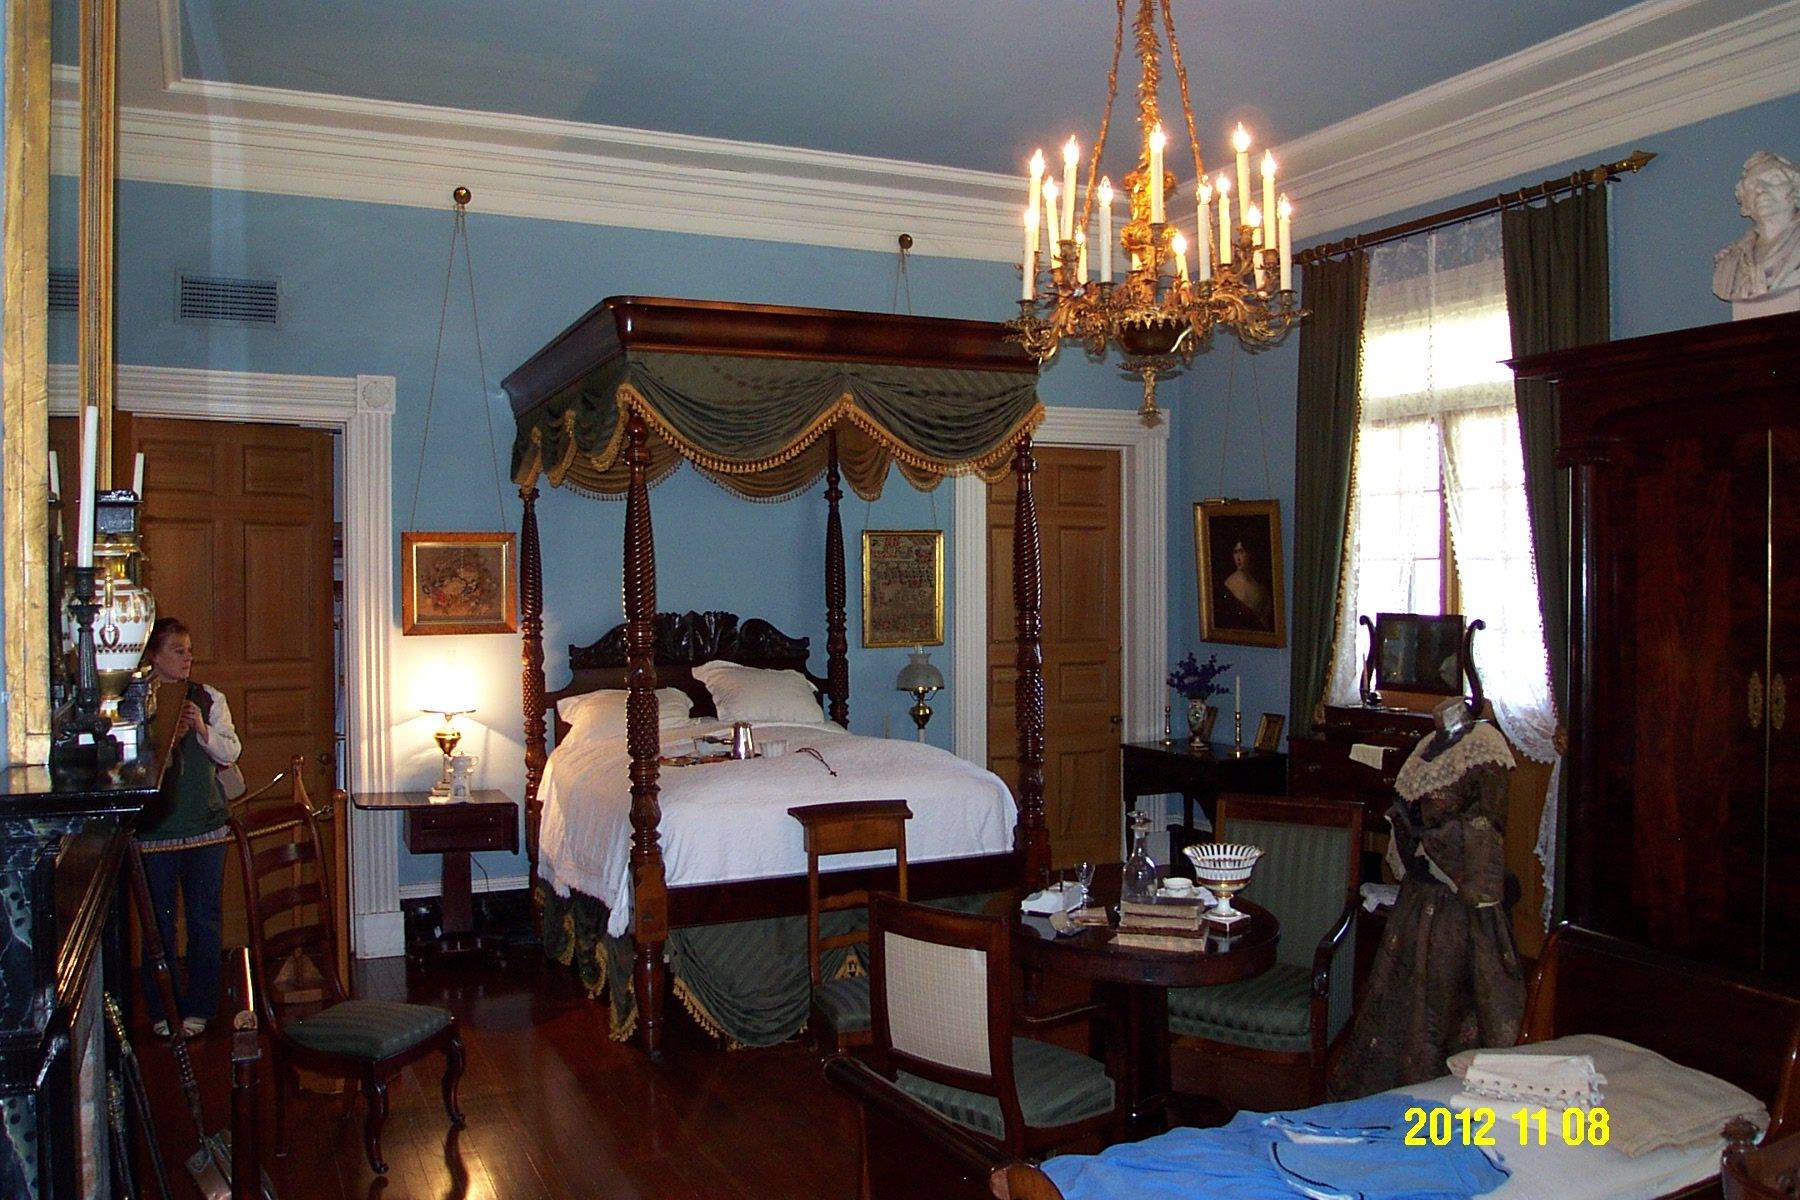 Related image Antebellum home, American interior, House